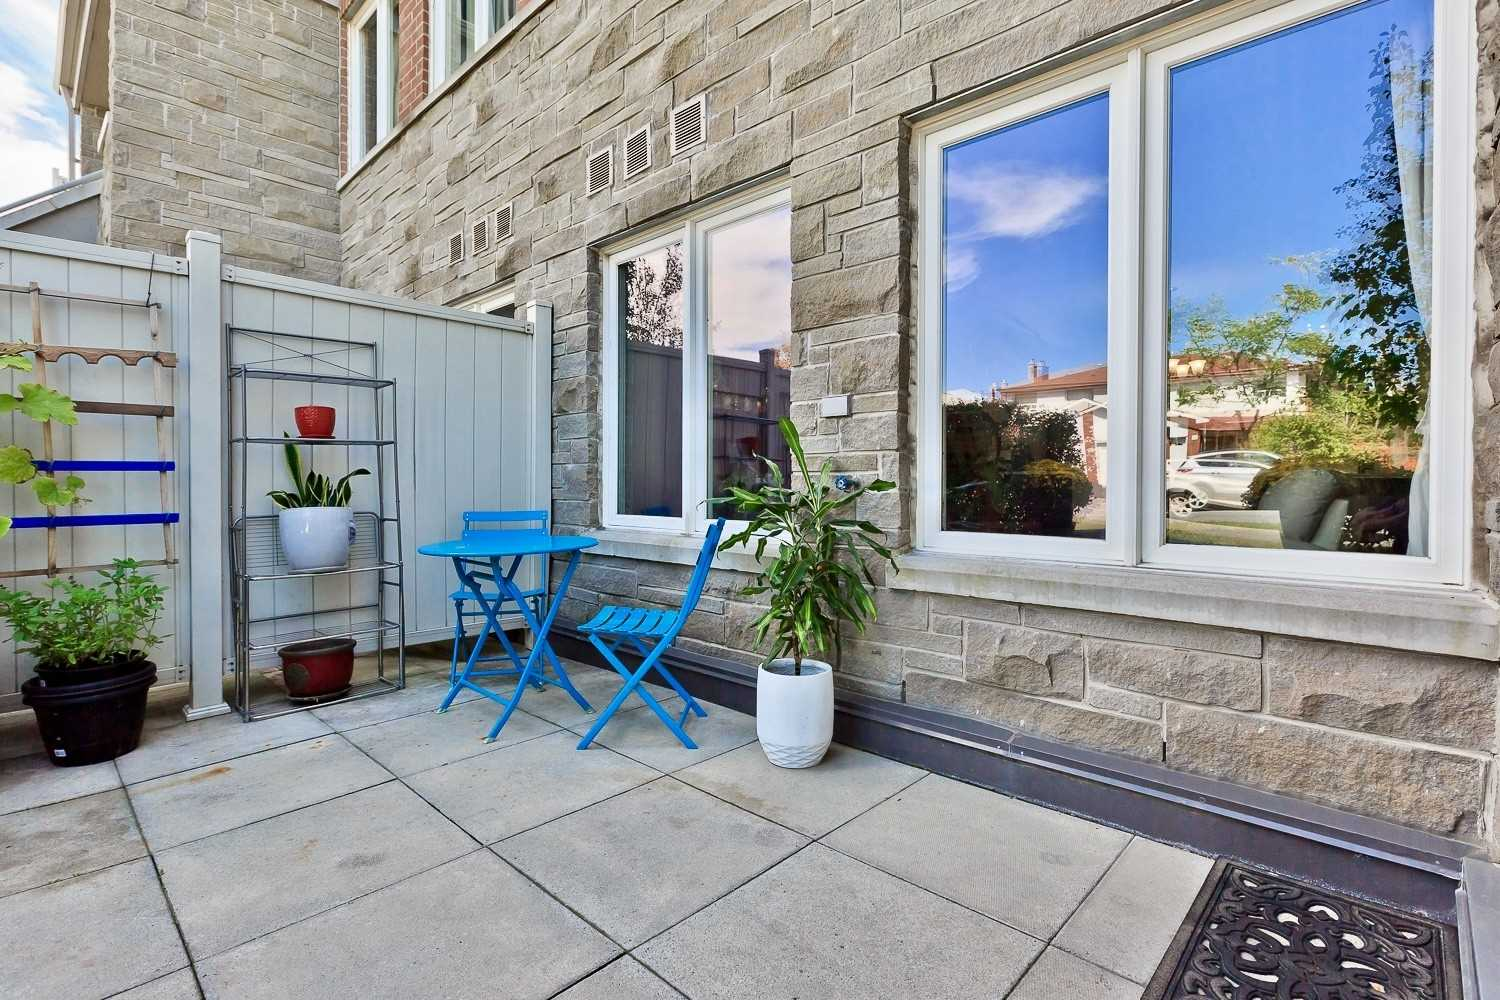 Condo Townhouse For Sale In Toronto , 2 Bedrooms Bedrooms, ,2 BathroomsBathrooms,Condo Townhouse,For Sale,108,Richgrove